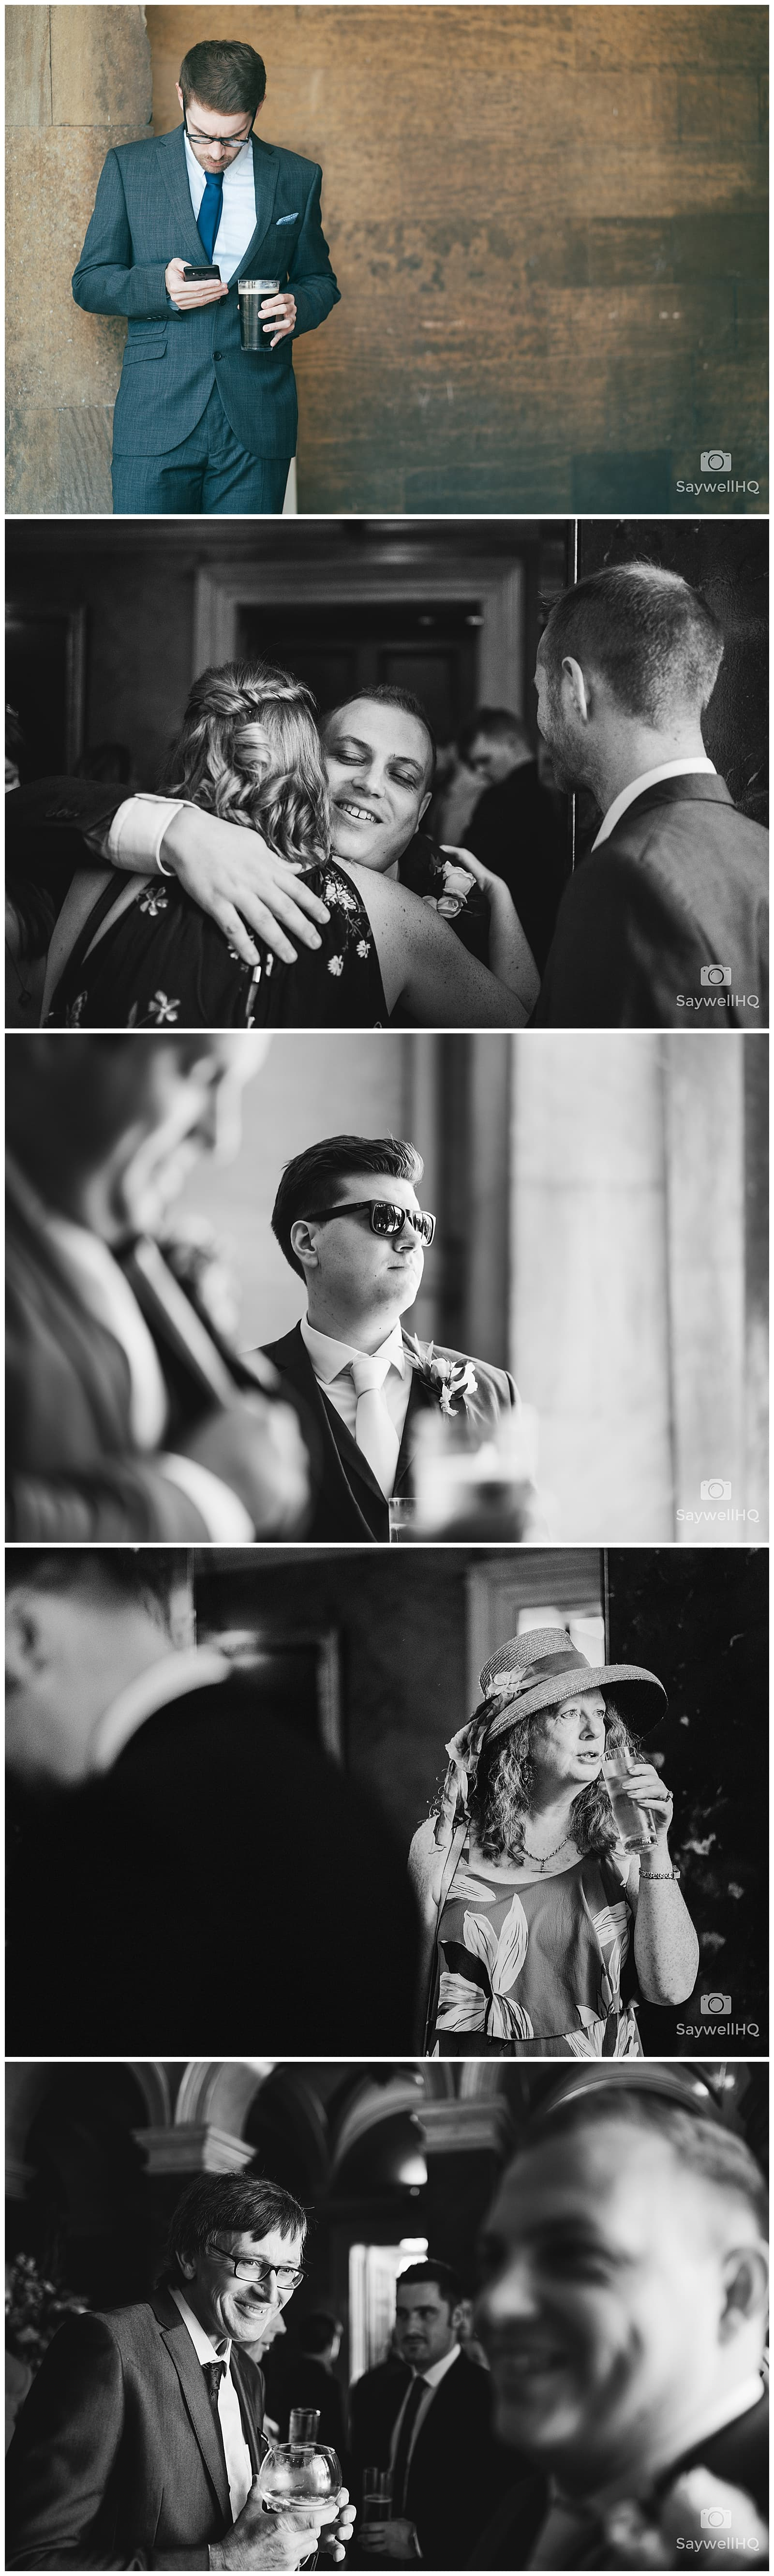 Wedding Photography at Prestwold Hall – Guests getting ready for the outdoor wedding ceremony at prestwold